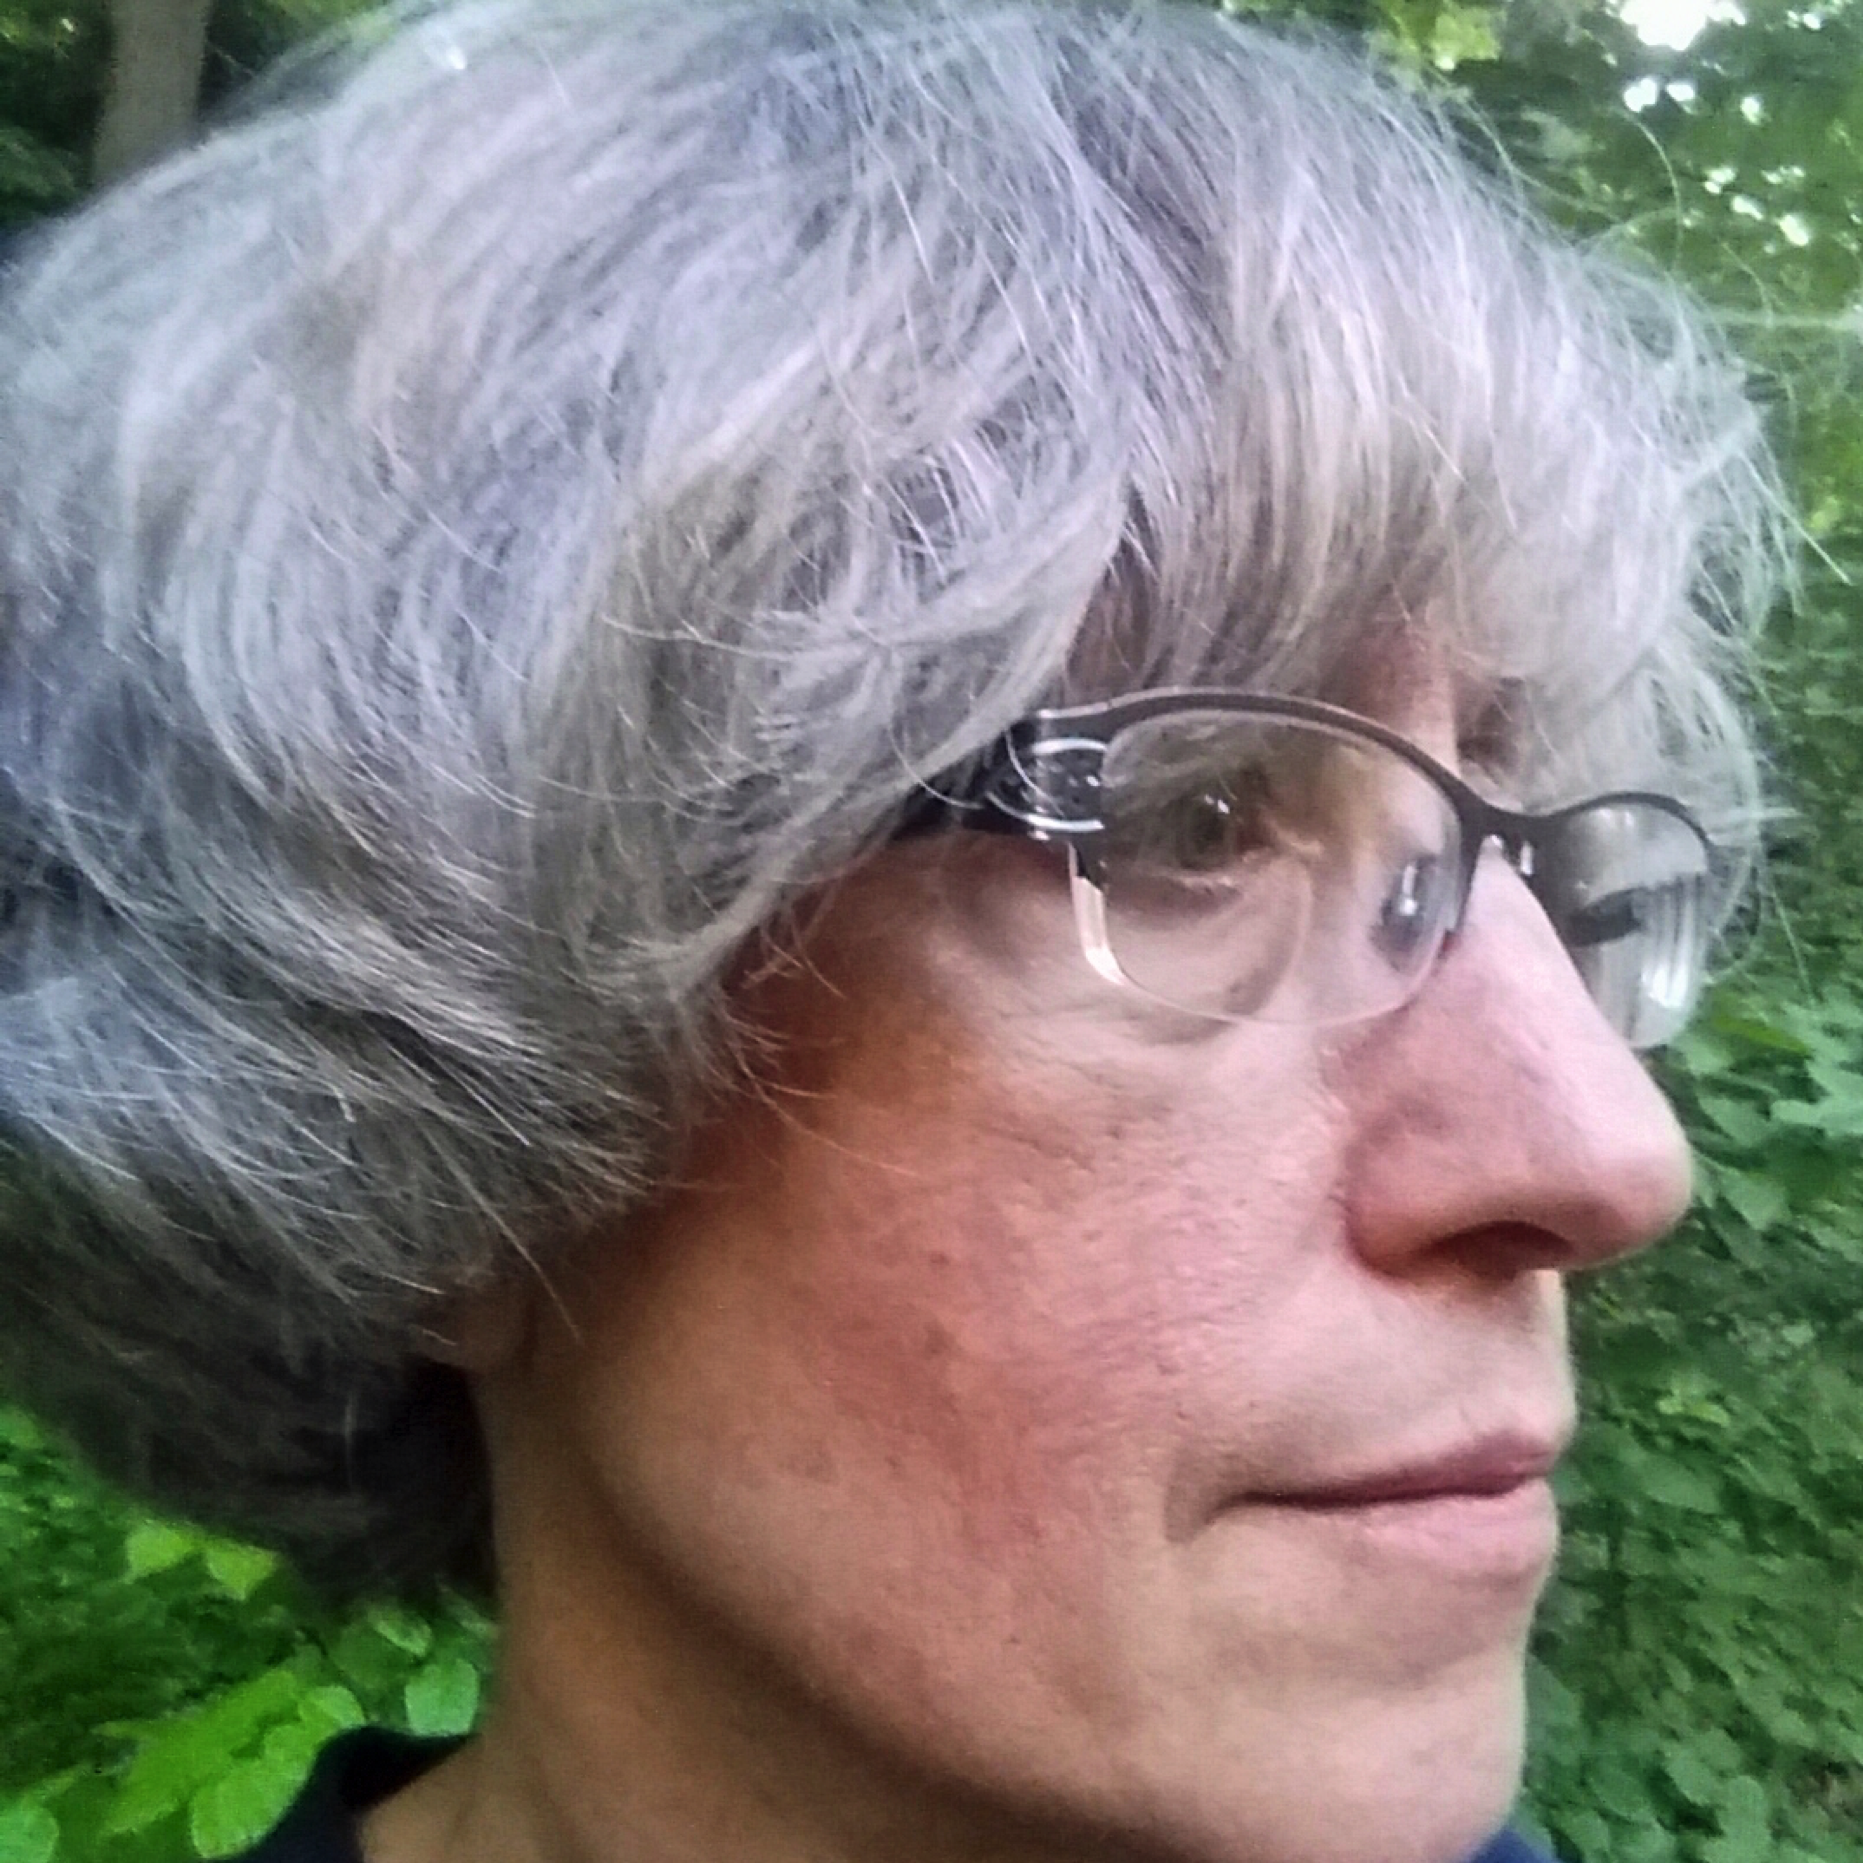 """Linda Kobert worked and taught in nursing for 20 years. Now she writes and teaches creative writing in central Virginia. She also serves as prose editor for the University of Virginia School of Medicine's online literary magazine Hospital Drive. Her essay  """"Writing the Cure""""  appears in the Spring 2016 issue of The Intima."""